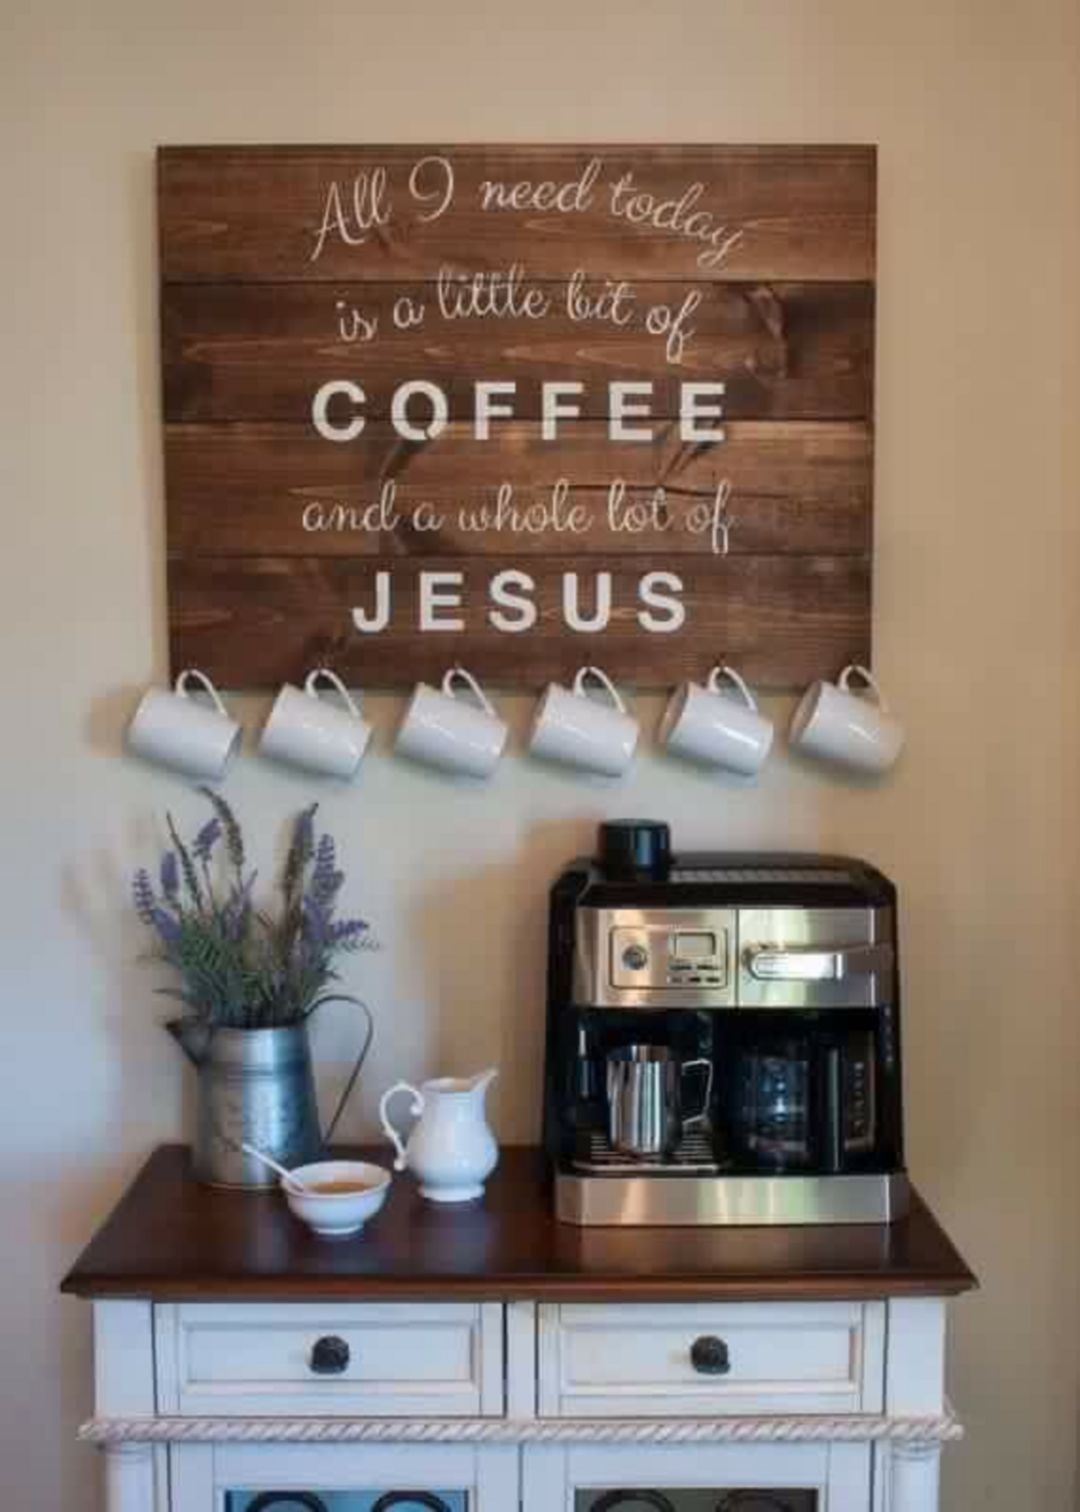 43 Awesome Coffee Themed Kitchen Decorations Ideas Coffee Bar